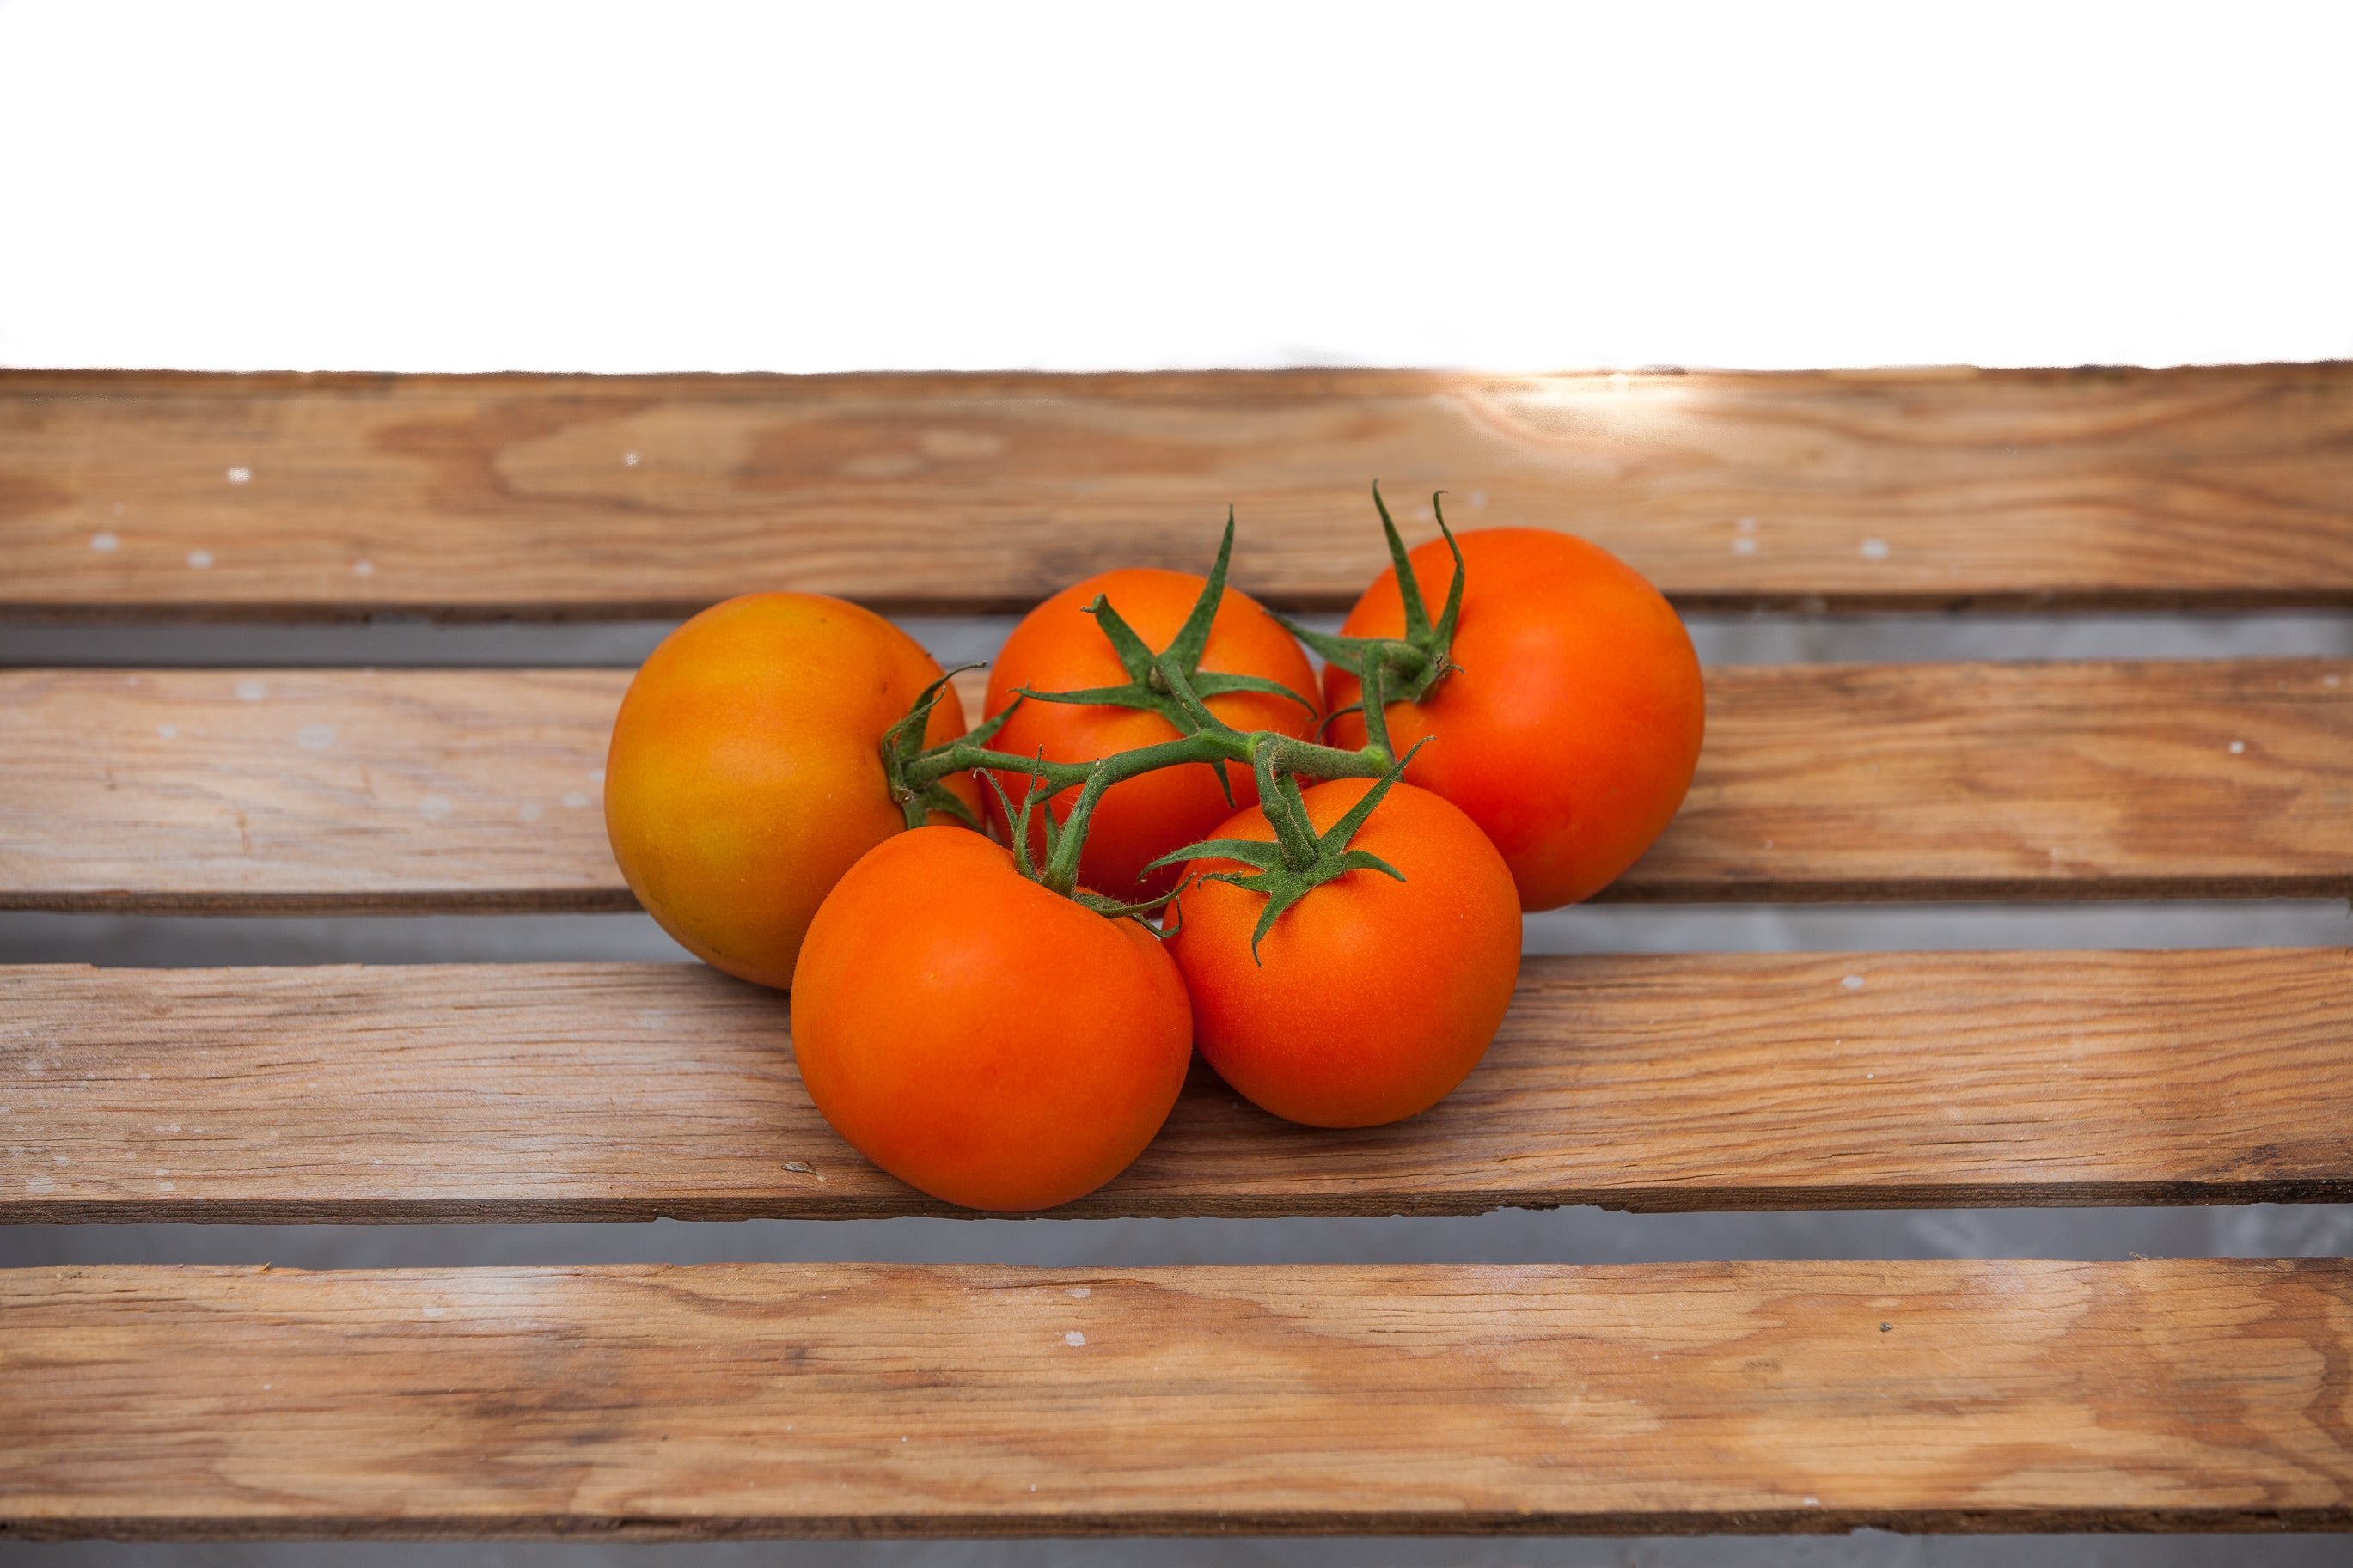 Cluster Tomato (Tomato on the Vine)